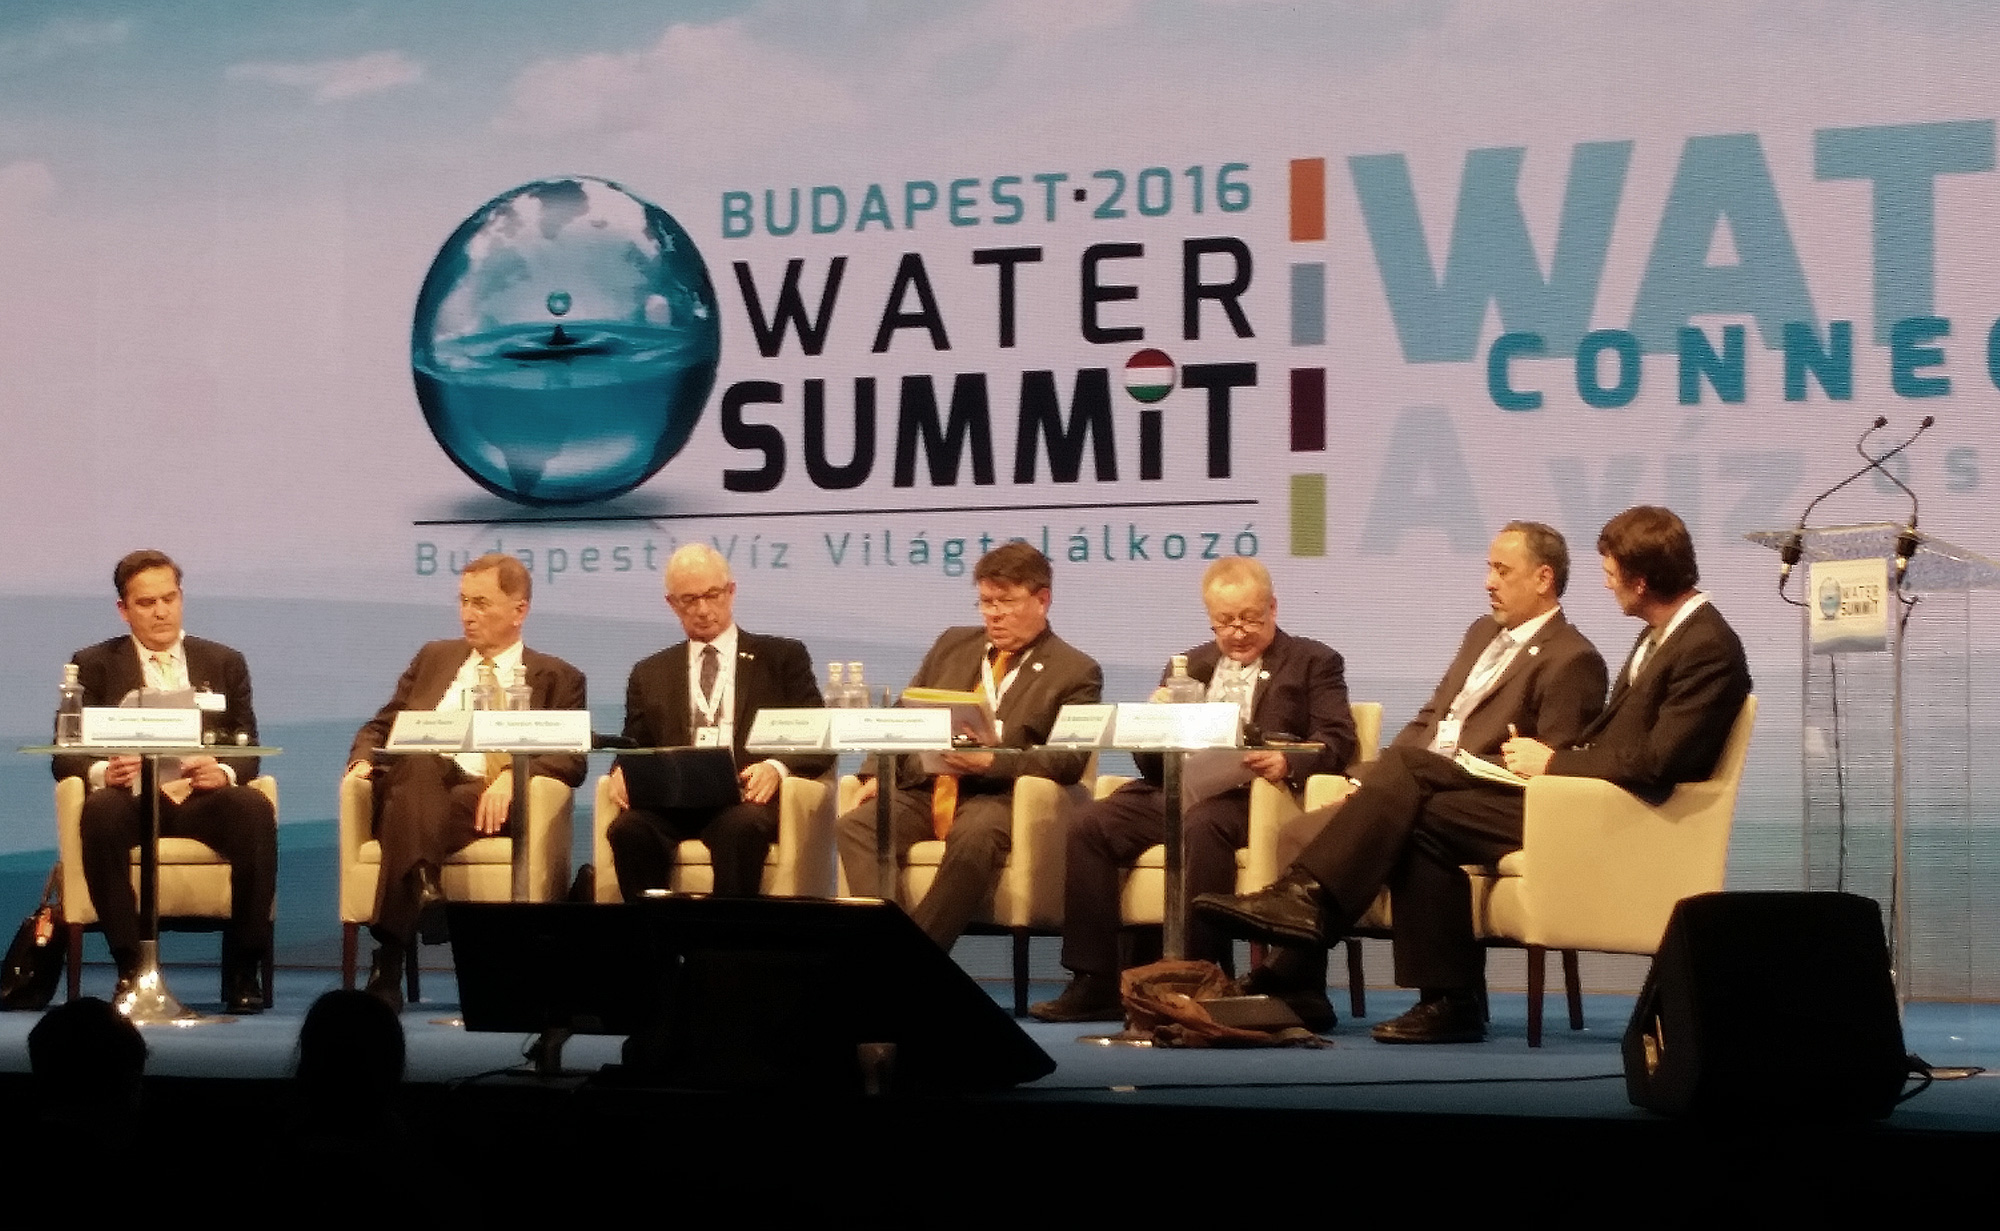 The Budapest Water Conference